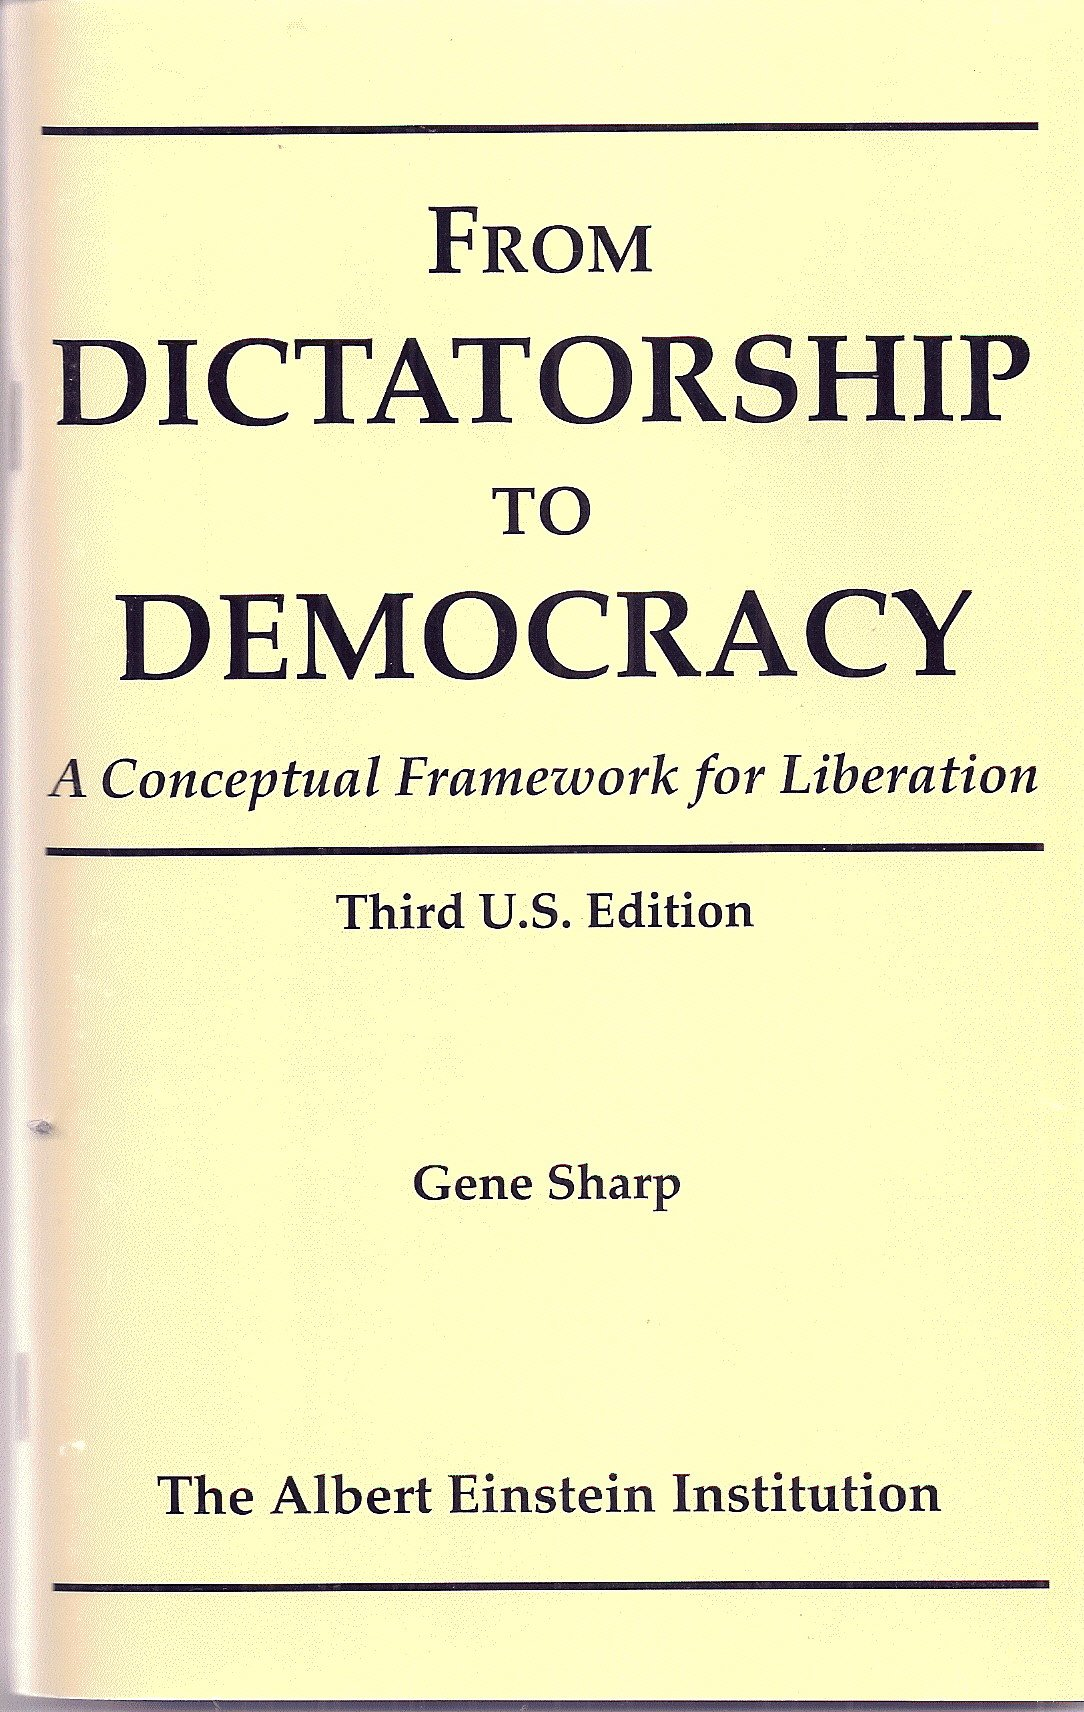 from dictatorship to democracy a conceptual framework for from dictatorship to democracy a conceptual framework for liberation gene sharp 9781880813096 com books